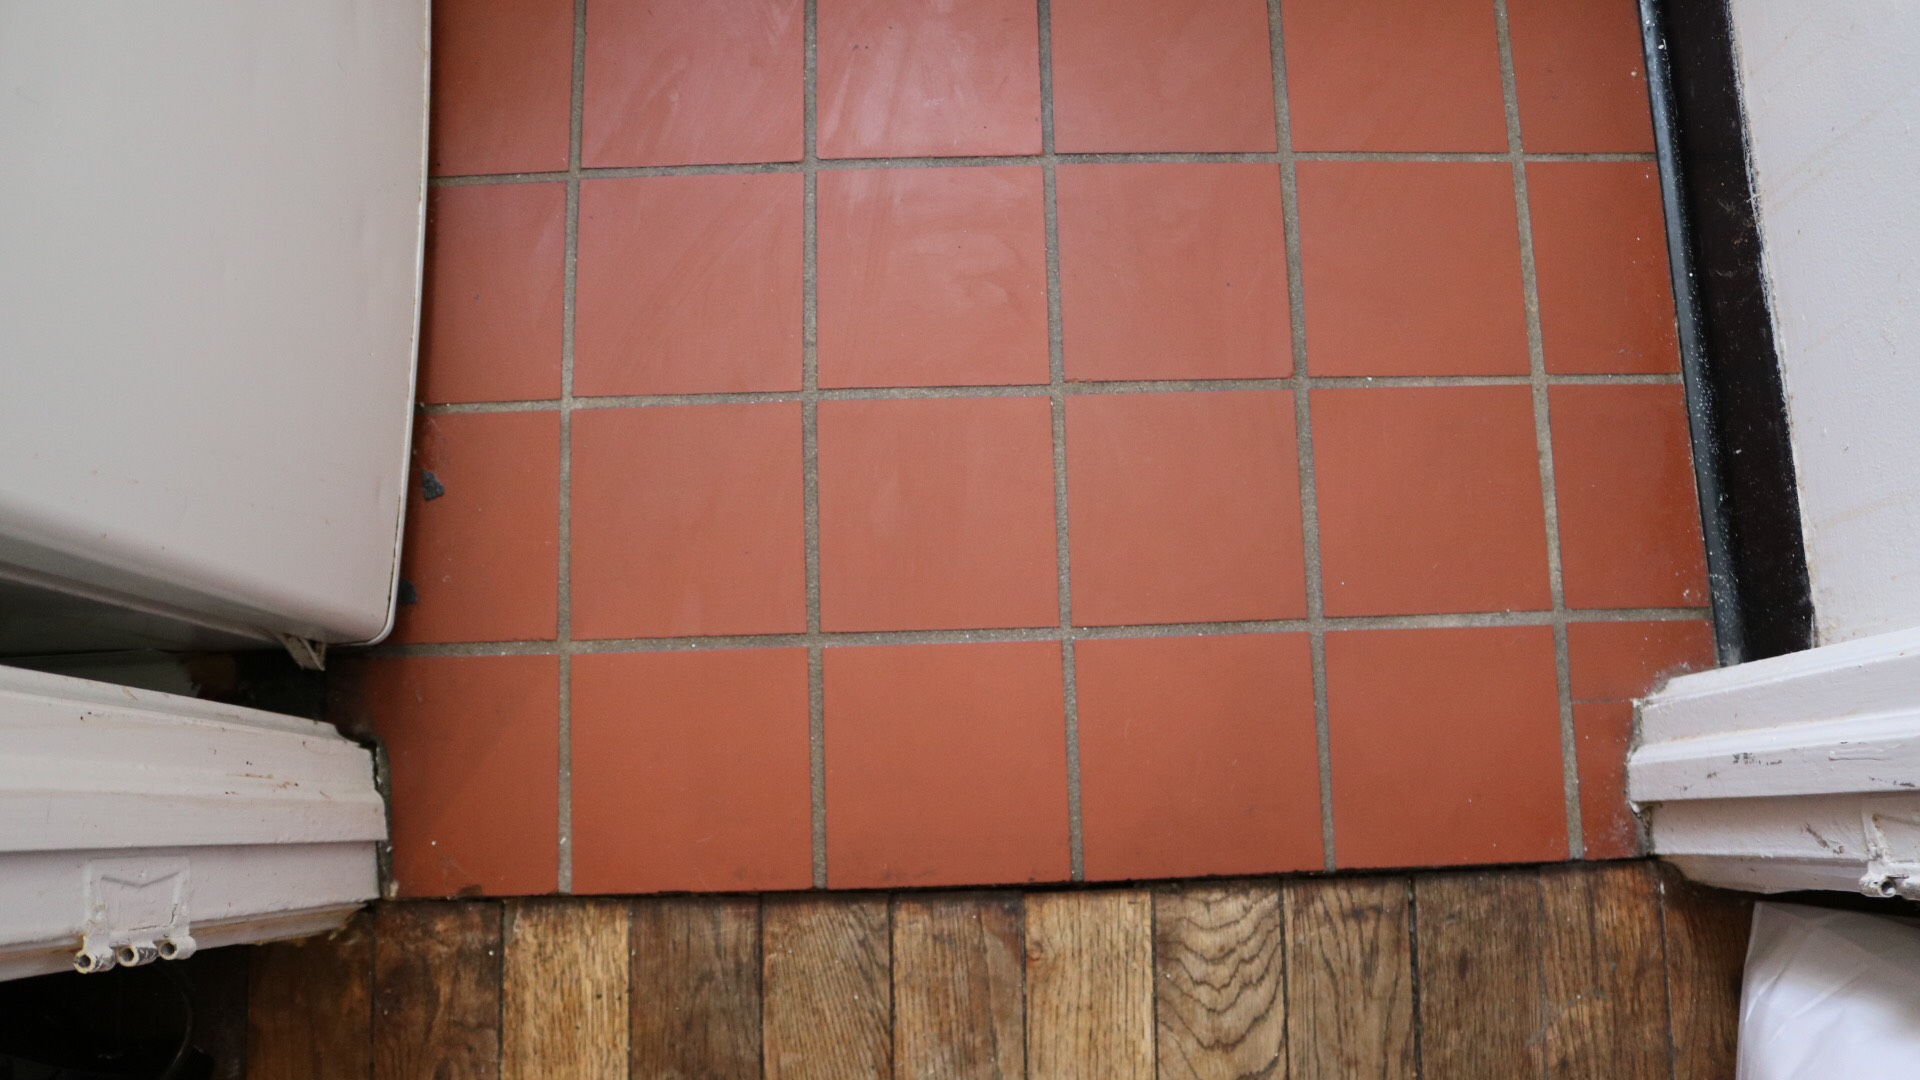 peel and stick tiles a cautionary tale